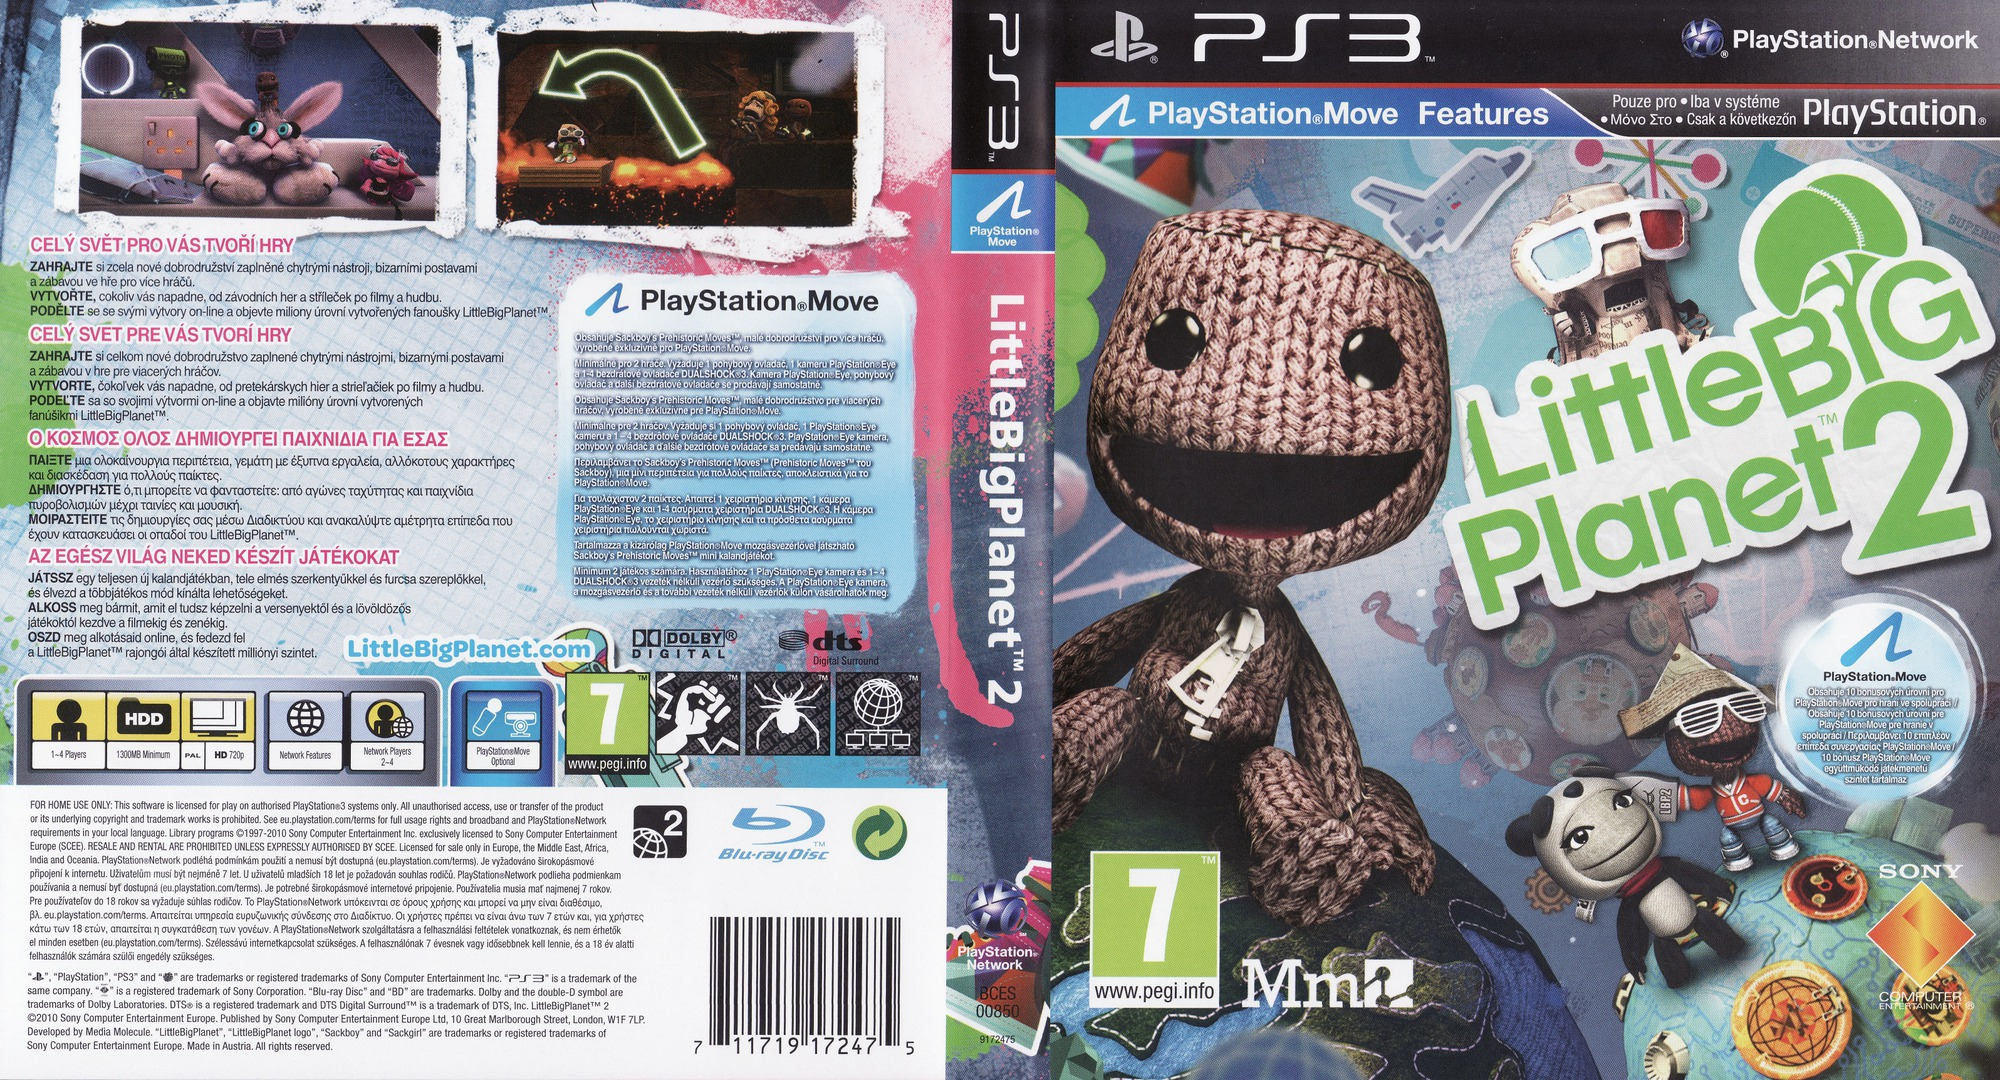 LittleBigPlanet 2 PS3 coverfullHQ (BCES00850)